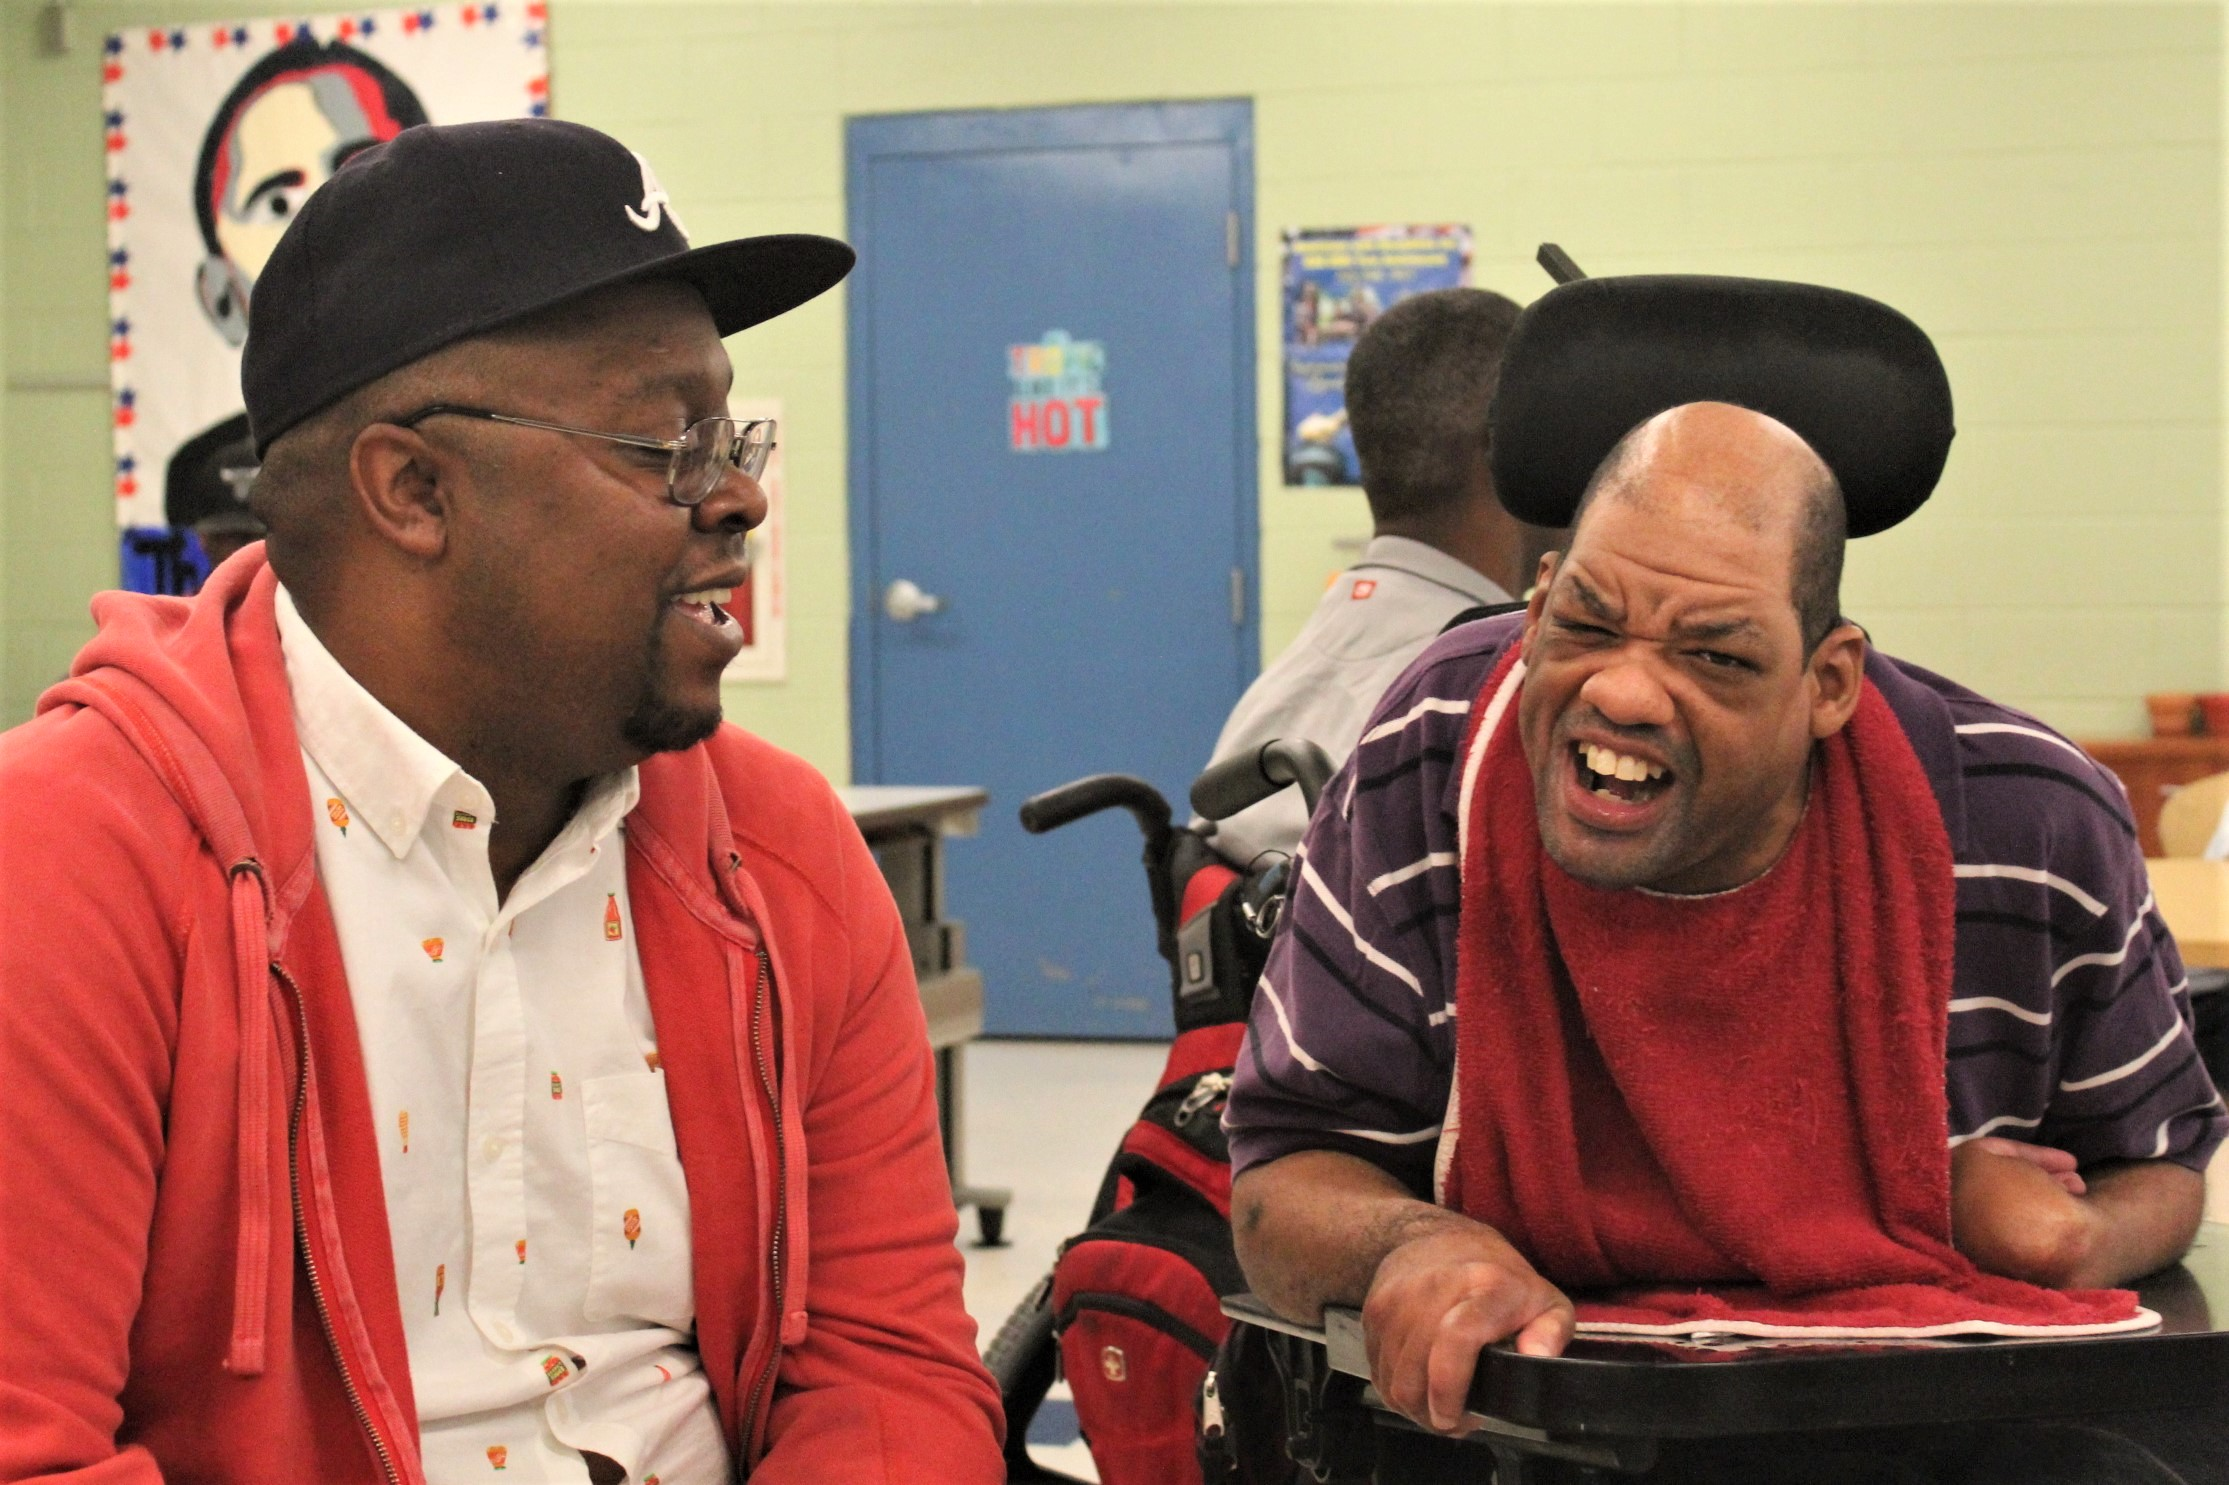 Anthony Howard (L) with hanging out with Jimmy, Adult Program participant